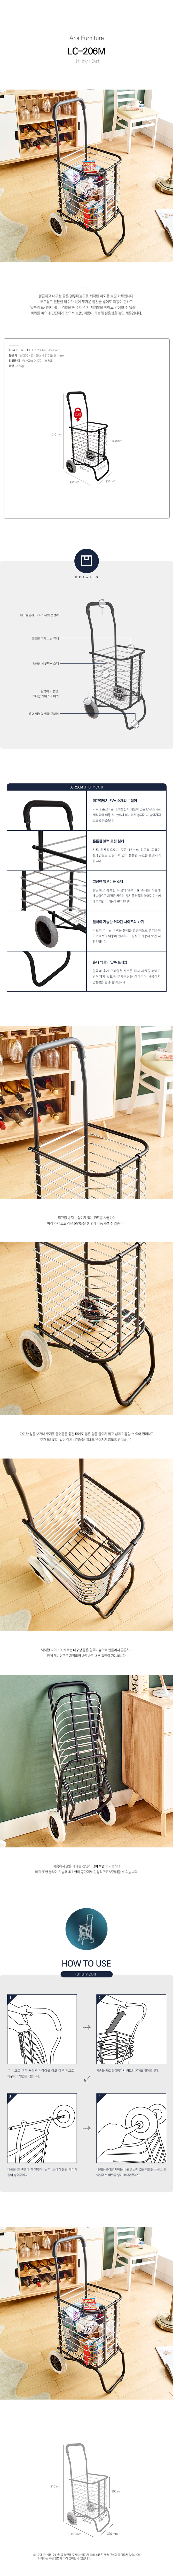 LC-206M-Shopping-Trolley_181030.jpg